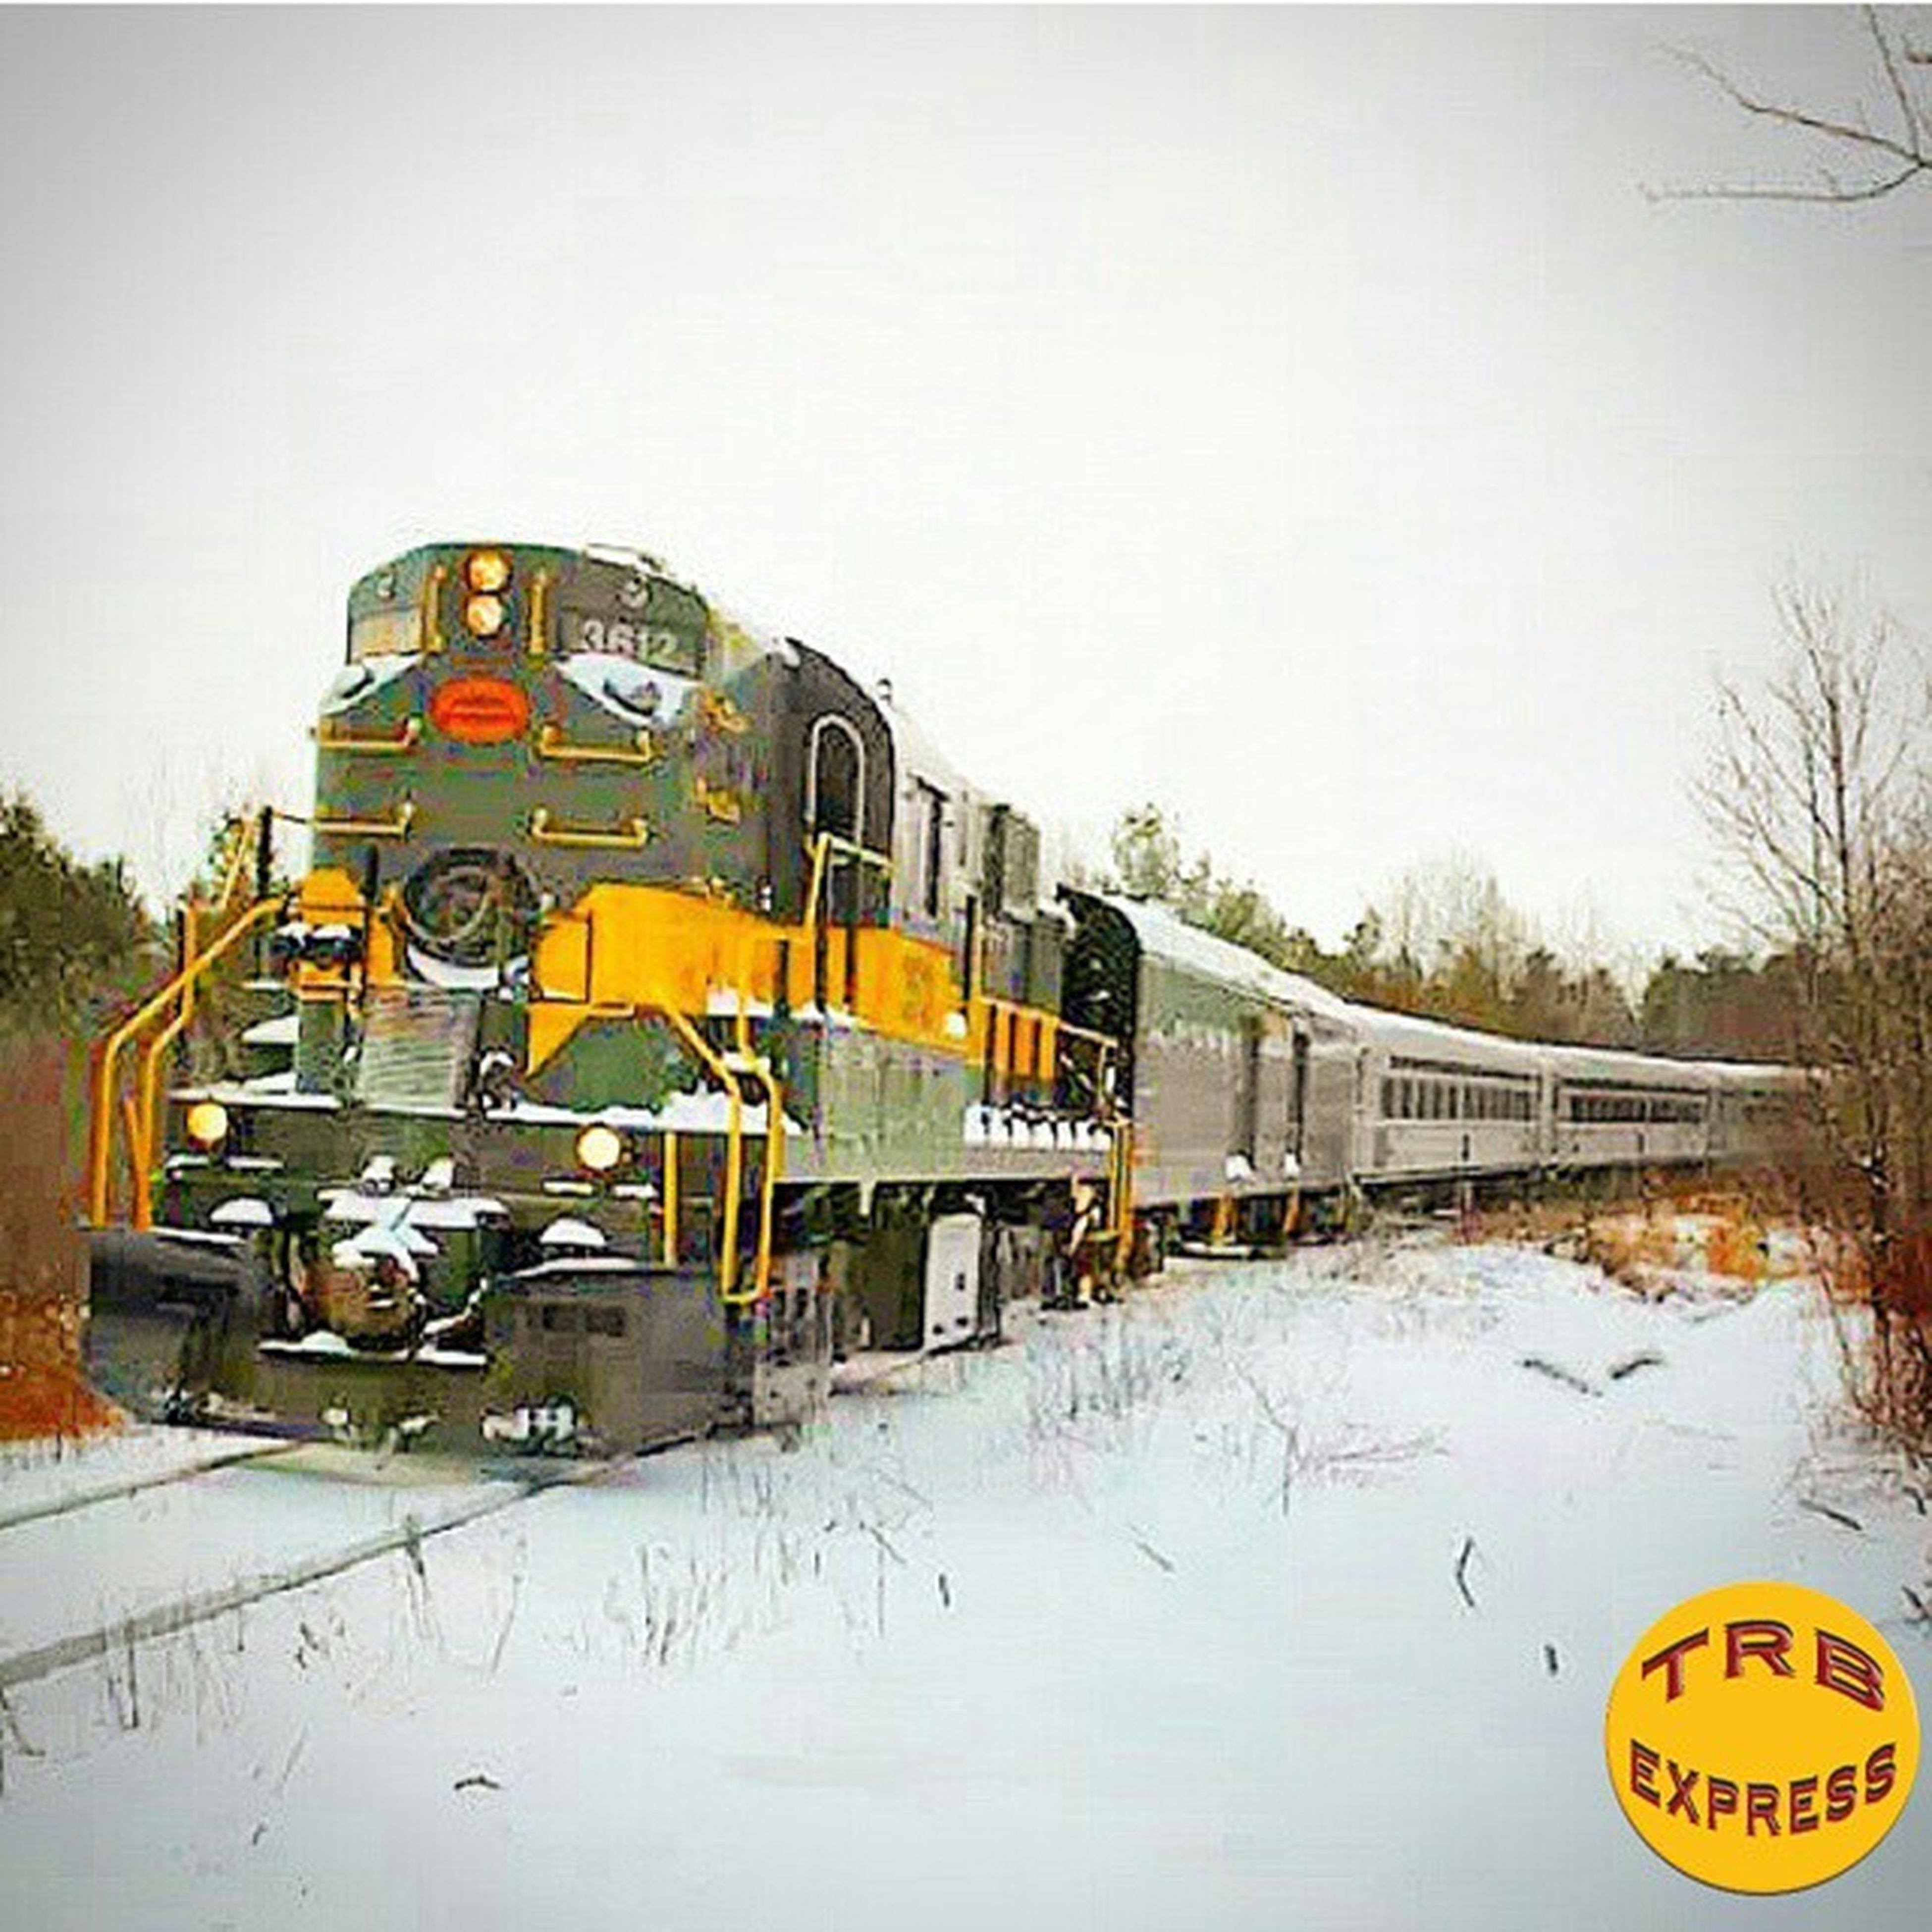 transportation, mode of transport, land vehicle, clear sky, car, yellow, winter, copy space, tree, snow, public transportation, text, western script, travel, bare tree, stationary, cold temperature, road, season, train - vehicle